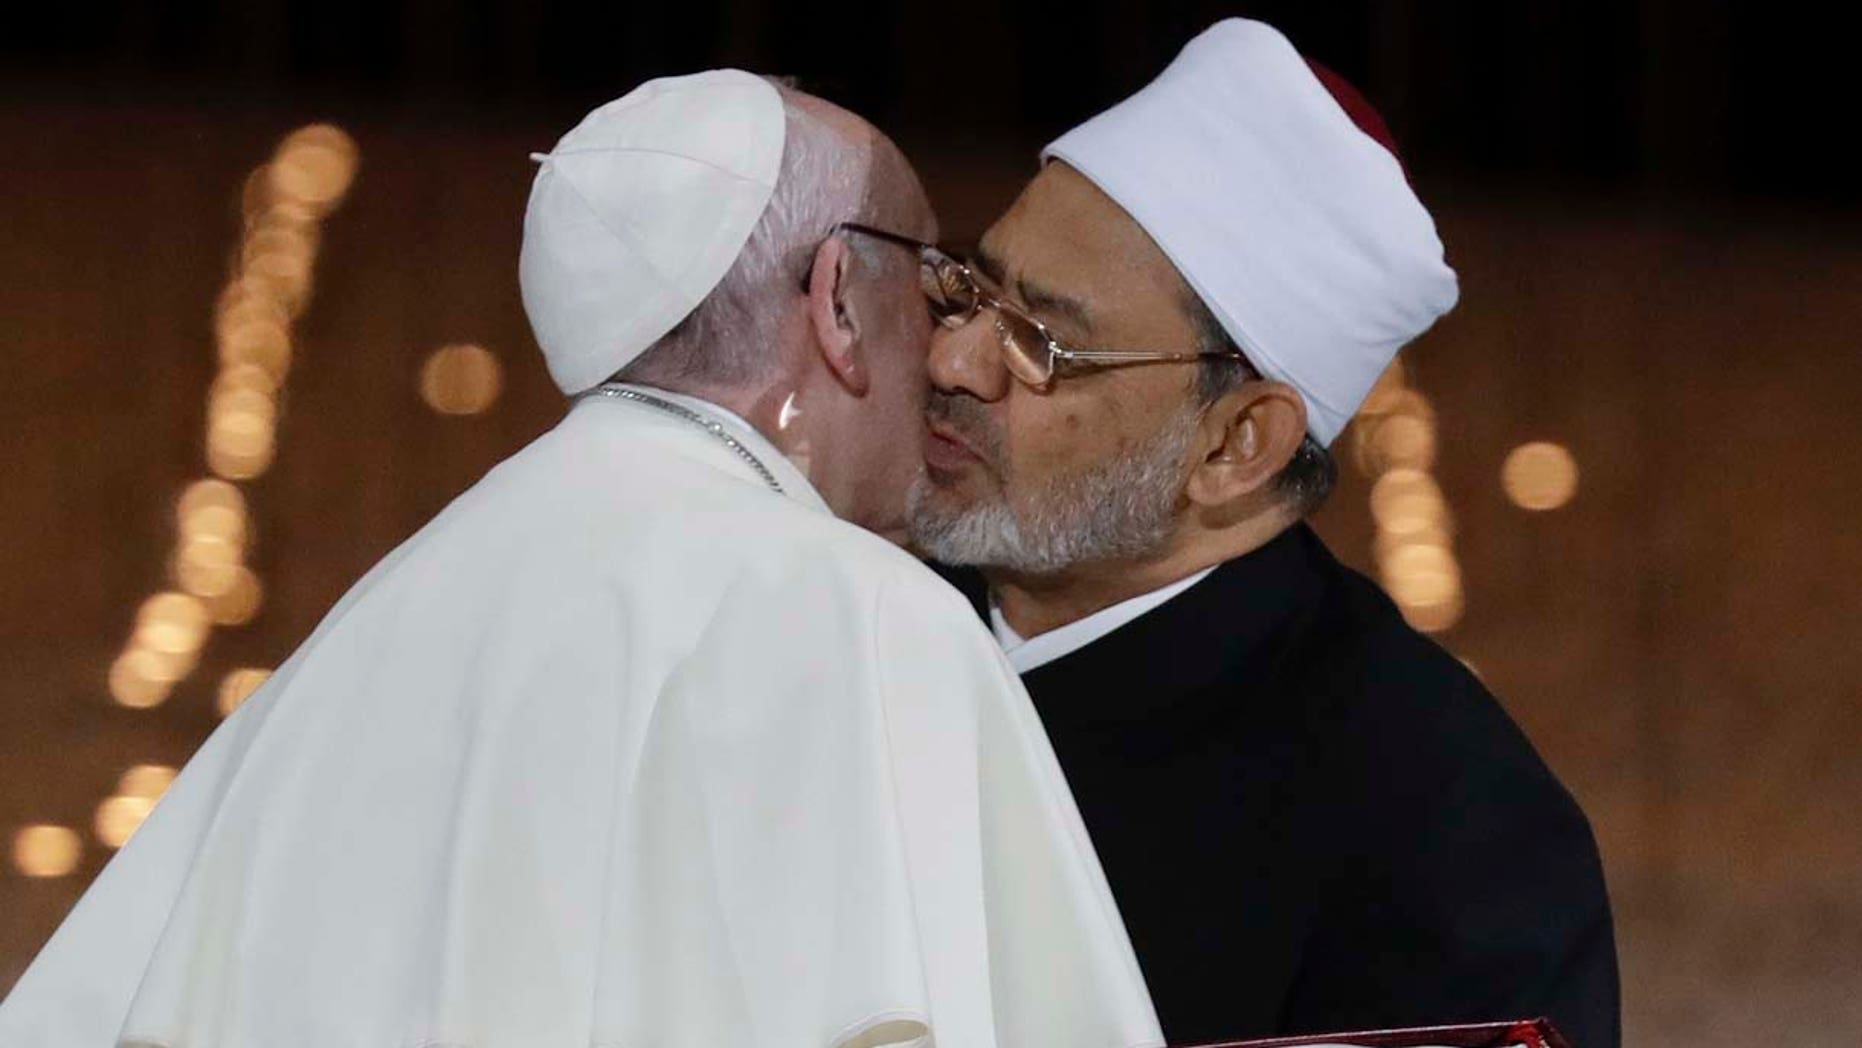 Pope Francis hugs Sheikh Ahmed el-Tayeb, the grand imam of Egypt's Al-Azhar, after an Interreligious meeting at the Founder's Memorial in Abu Dhabi, United Arab Emirates, Monday, Feb. 4, 2019. Pope Francis has asserted in the first-ever papal visit to the Arabian Peninsula that religious leaders have a duty to reject all war and commit themselves to dialogue. (AP Photo/Andrew Medichini)